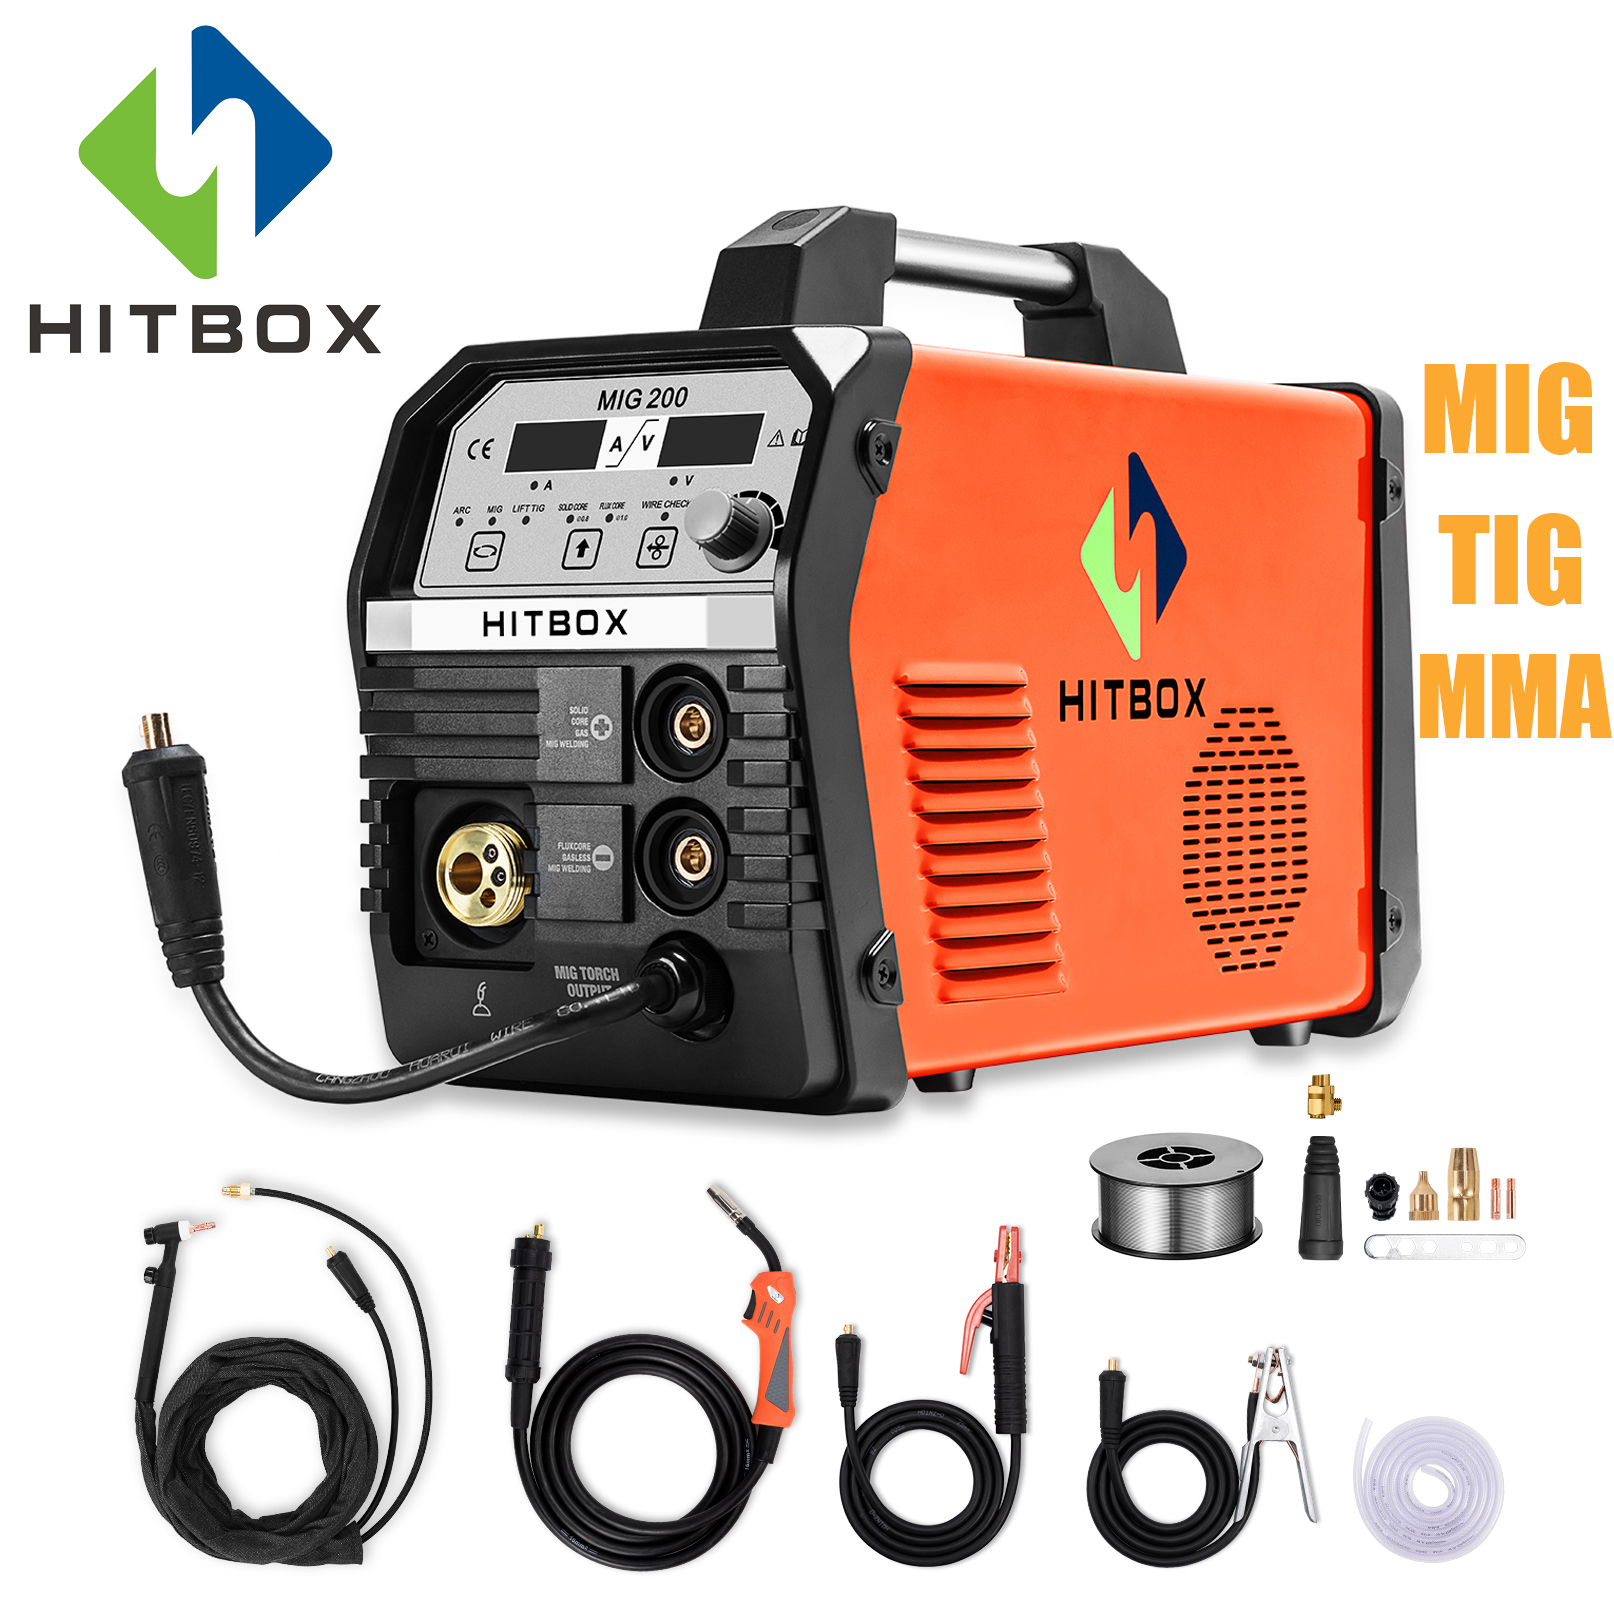 HITBOX Mig Welder New Appearance MIG200A Functional DC Gas No Gas Self Shielded MIG 4 0mm